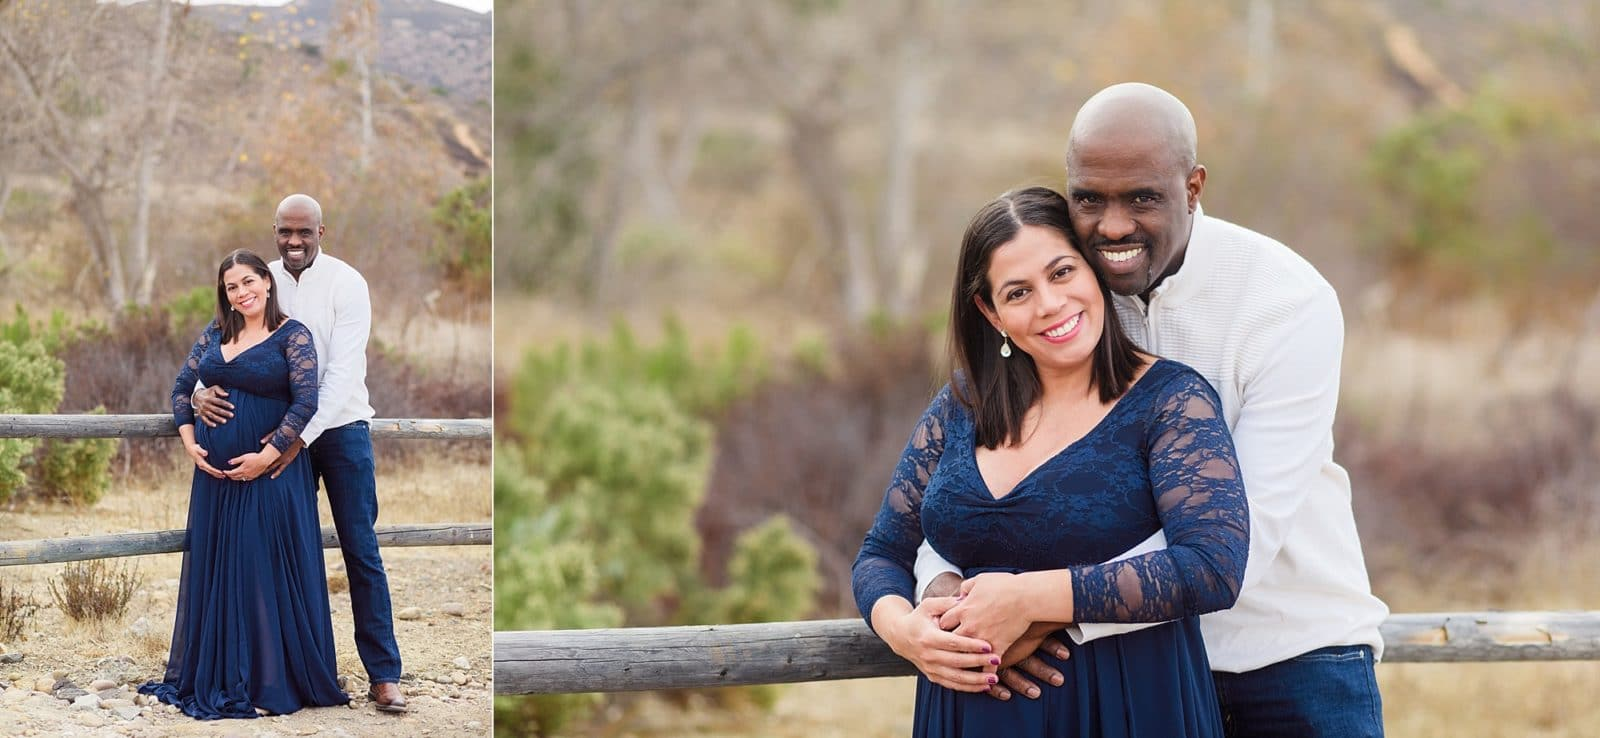 San Diego Photographers | San Diego Maternity Photographer